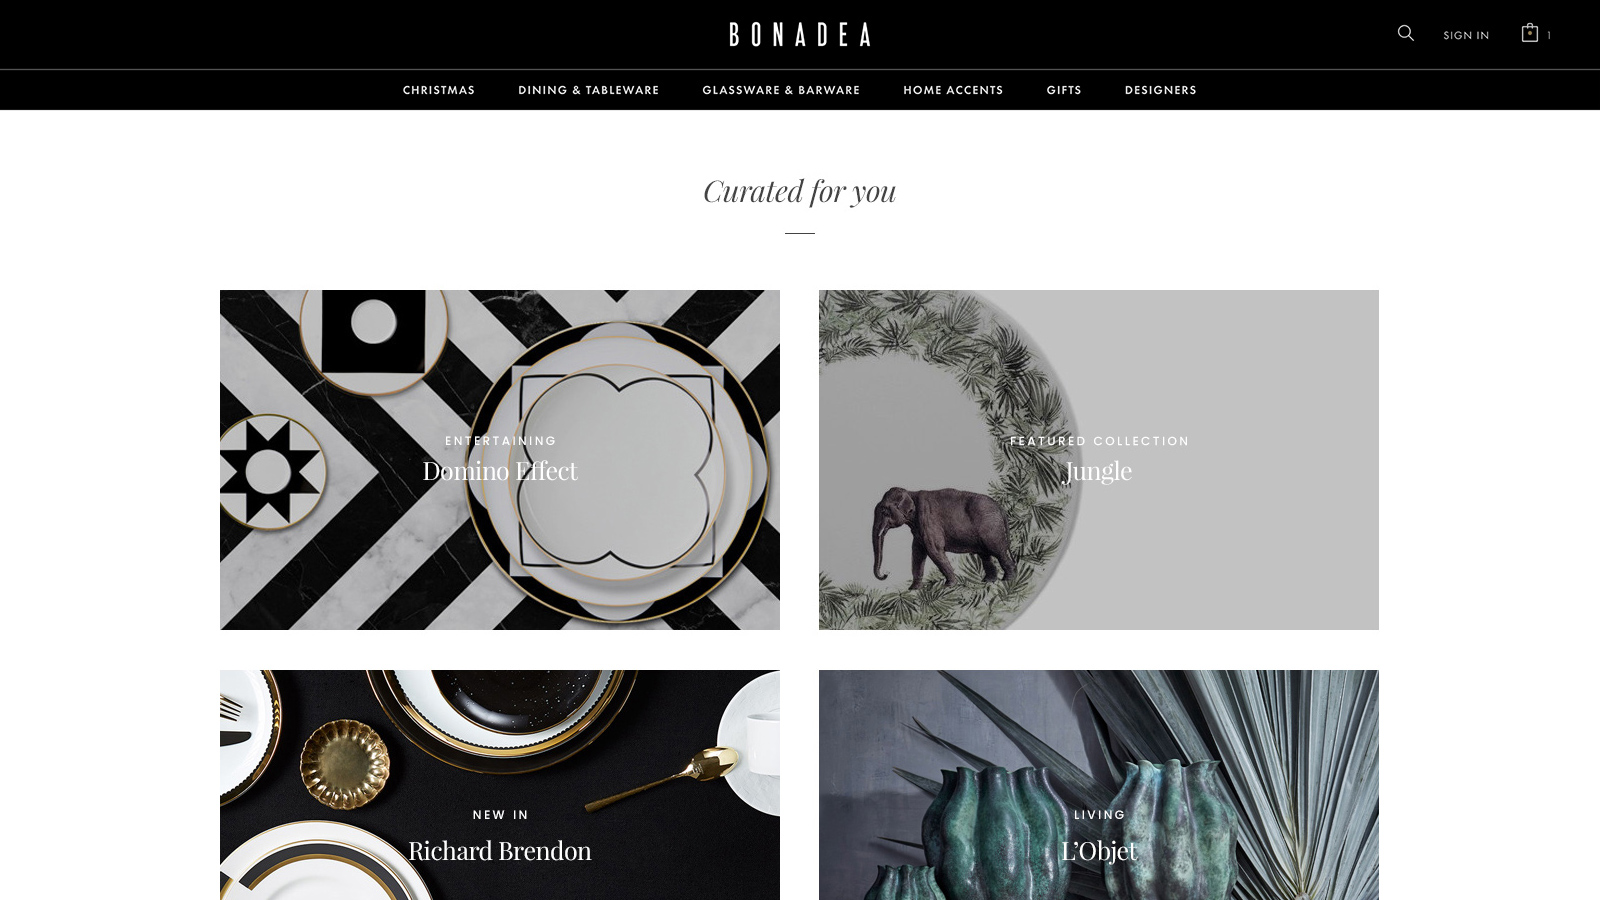 Bonadea online store design and development